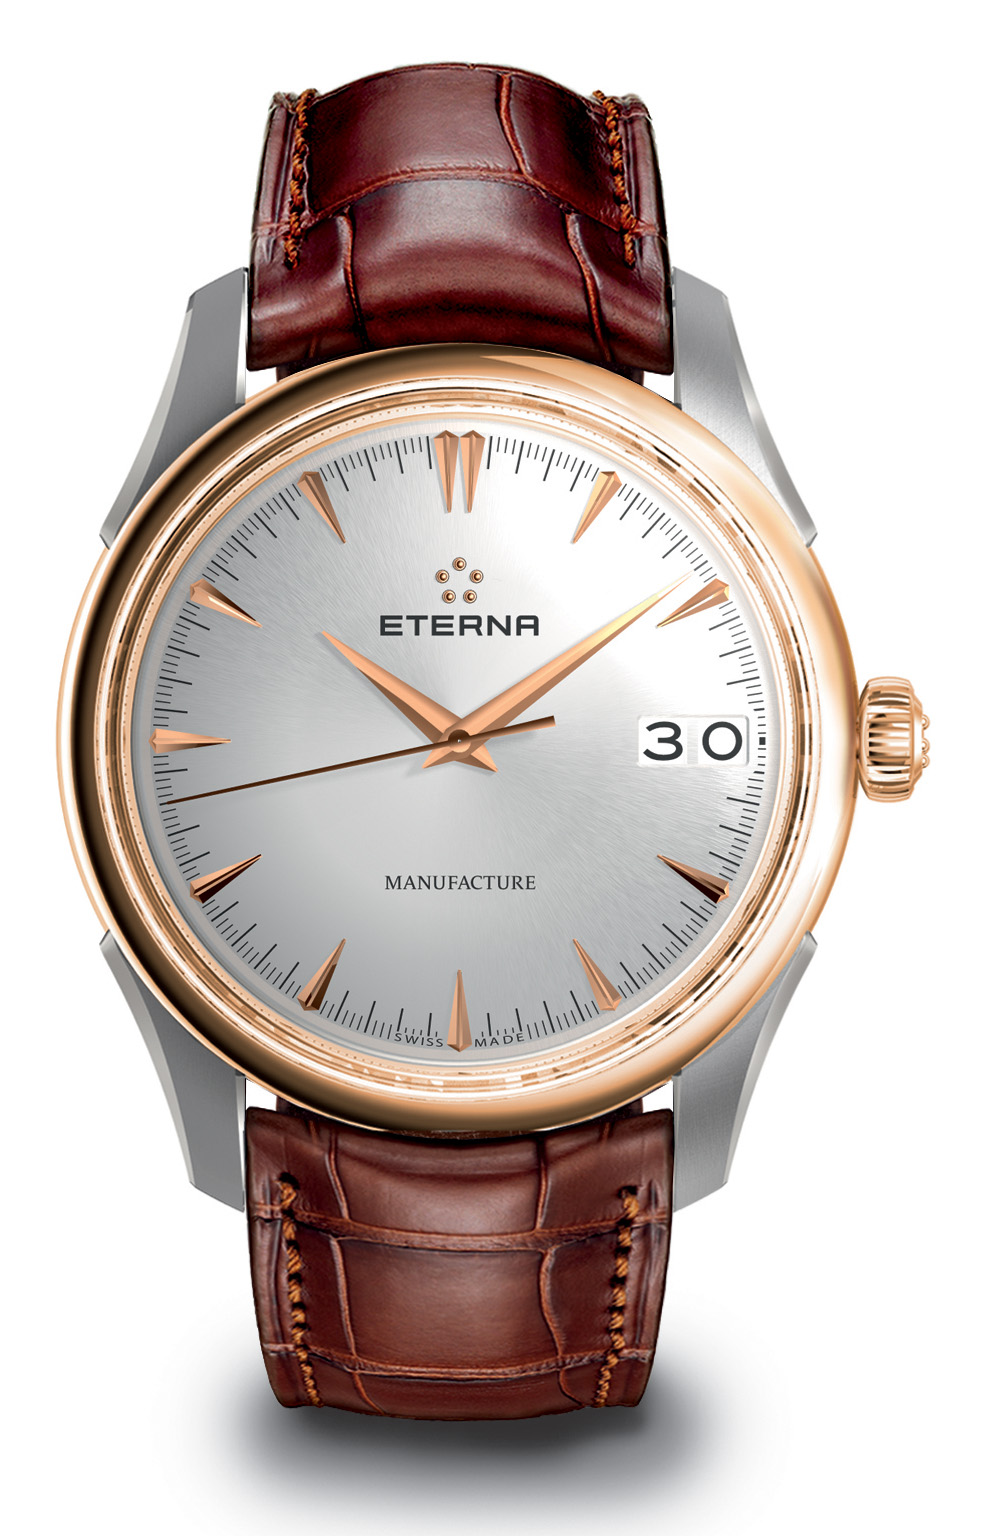 Eterna 1948 Watch - Baselworld 2014